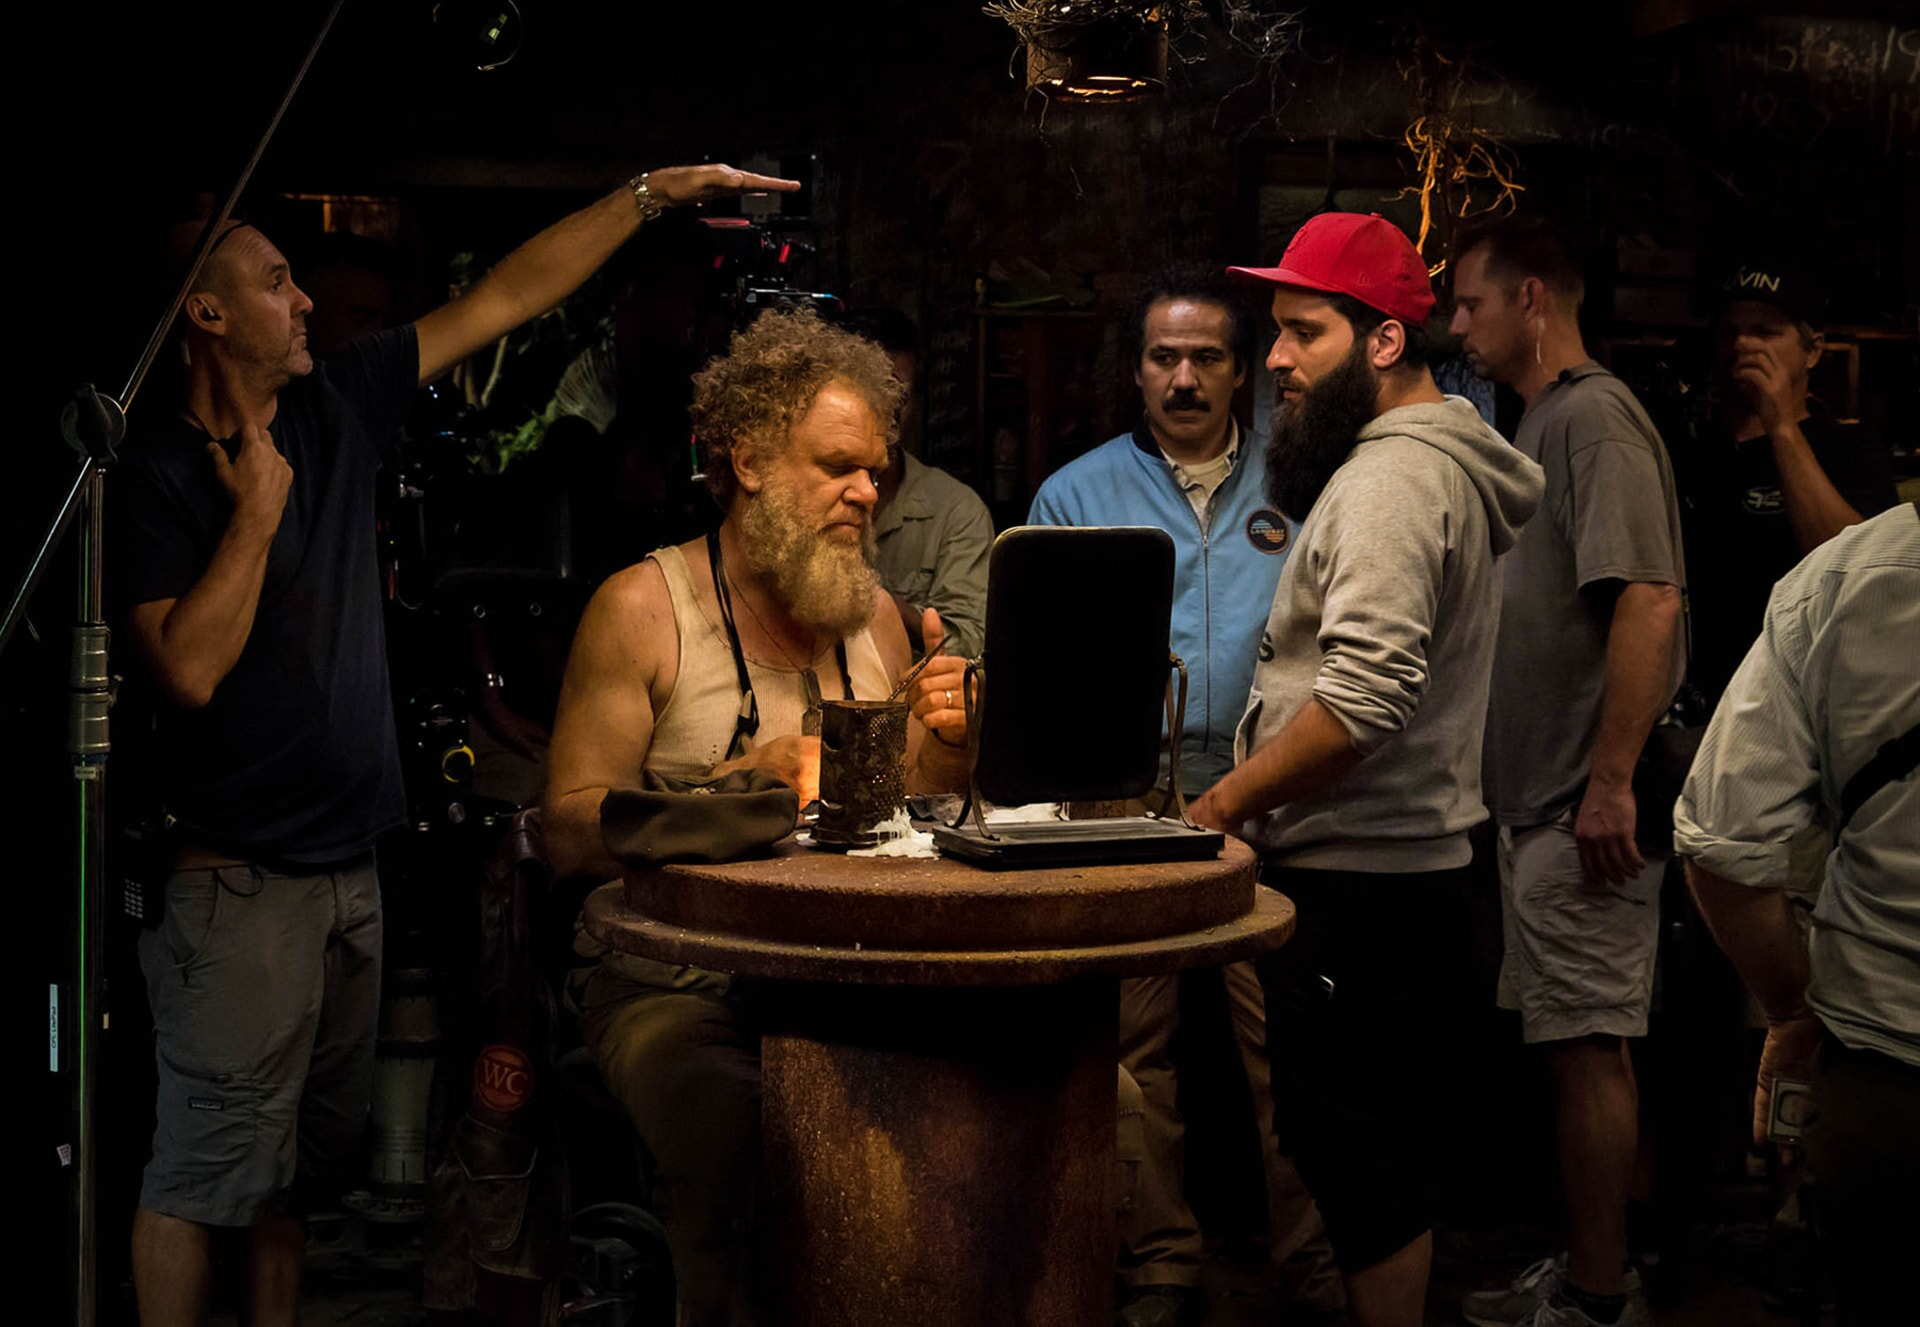 """JOHN C. REILLY, JOHN ORTIZ and director JORDAN VOGT-ROBERTS on the set of Warner Bros. Pictures', Legendary Pictures' and Tencent Pictures' action adventure """"KONG: SKULL ISLAND,"""" a Warner Bros. Pictures release."""